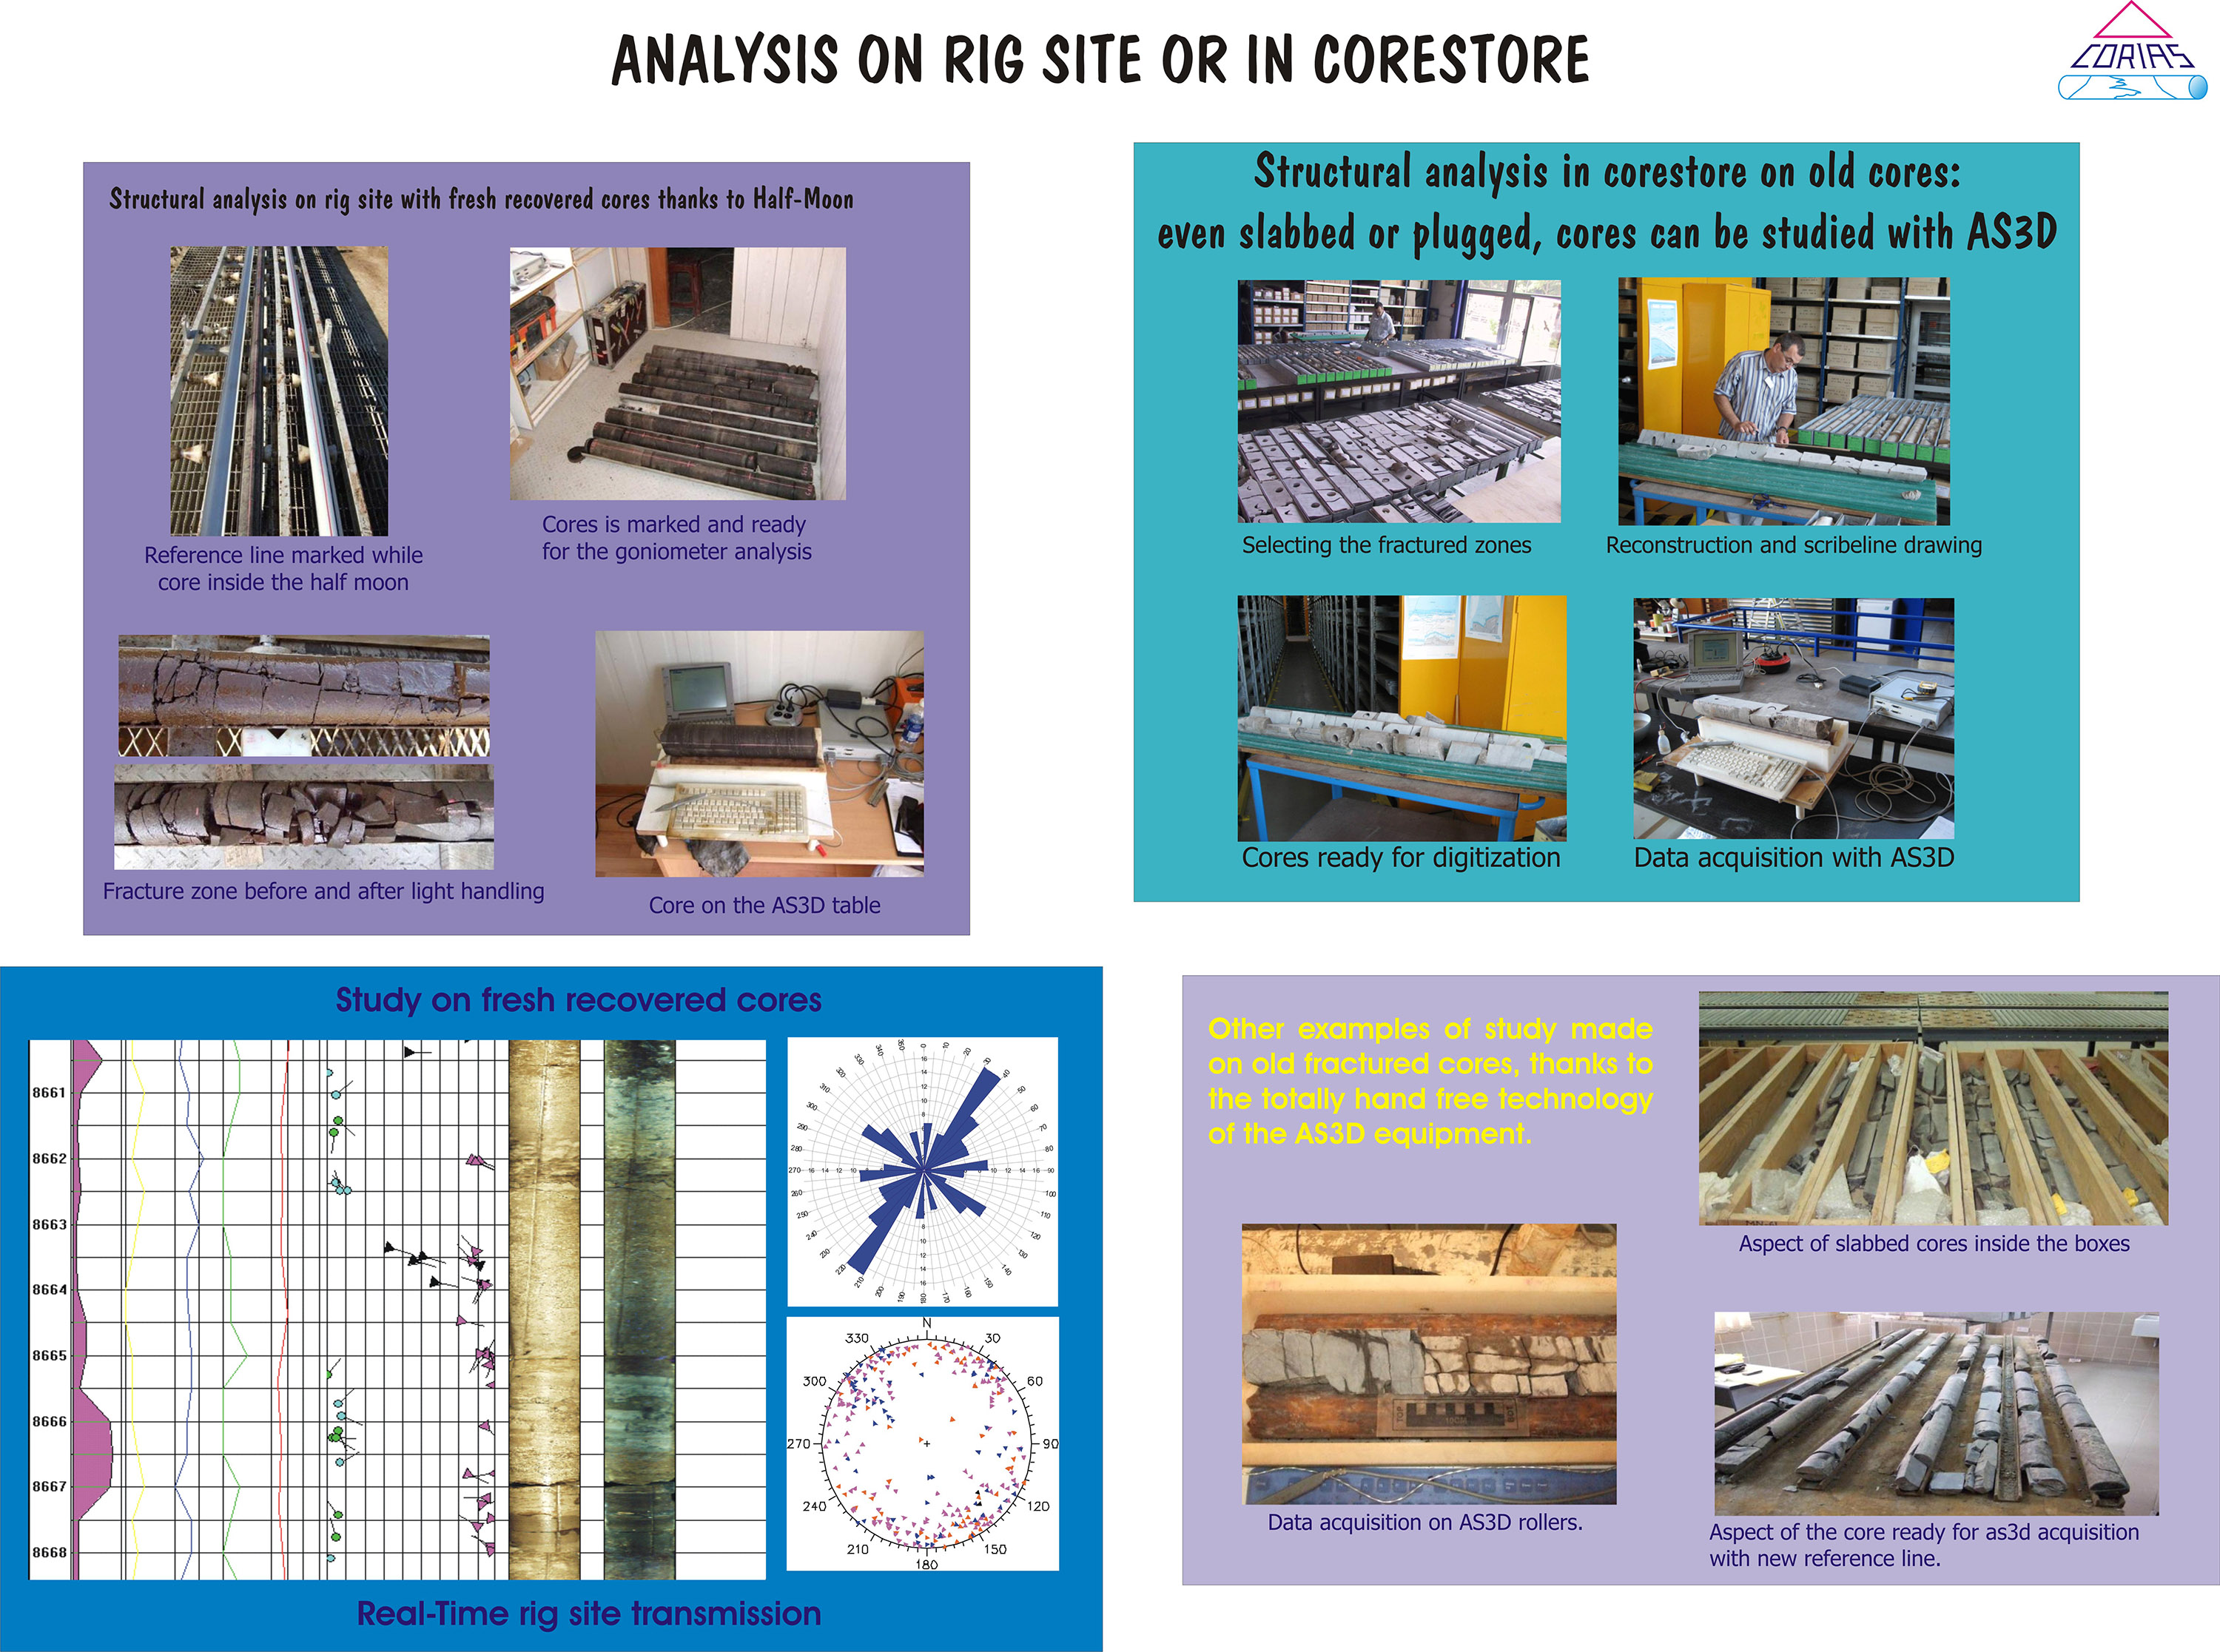 Corias Analysis on rig site or in corestore